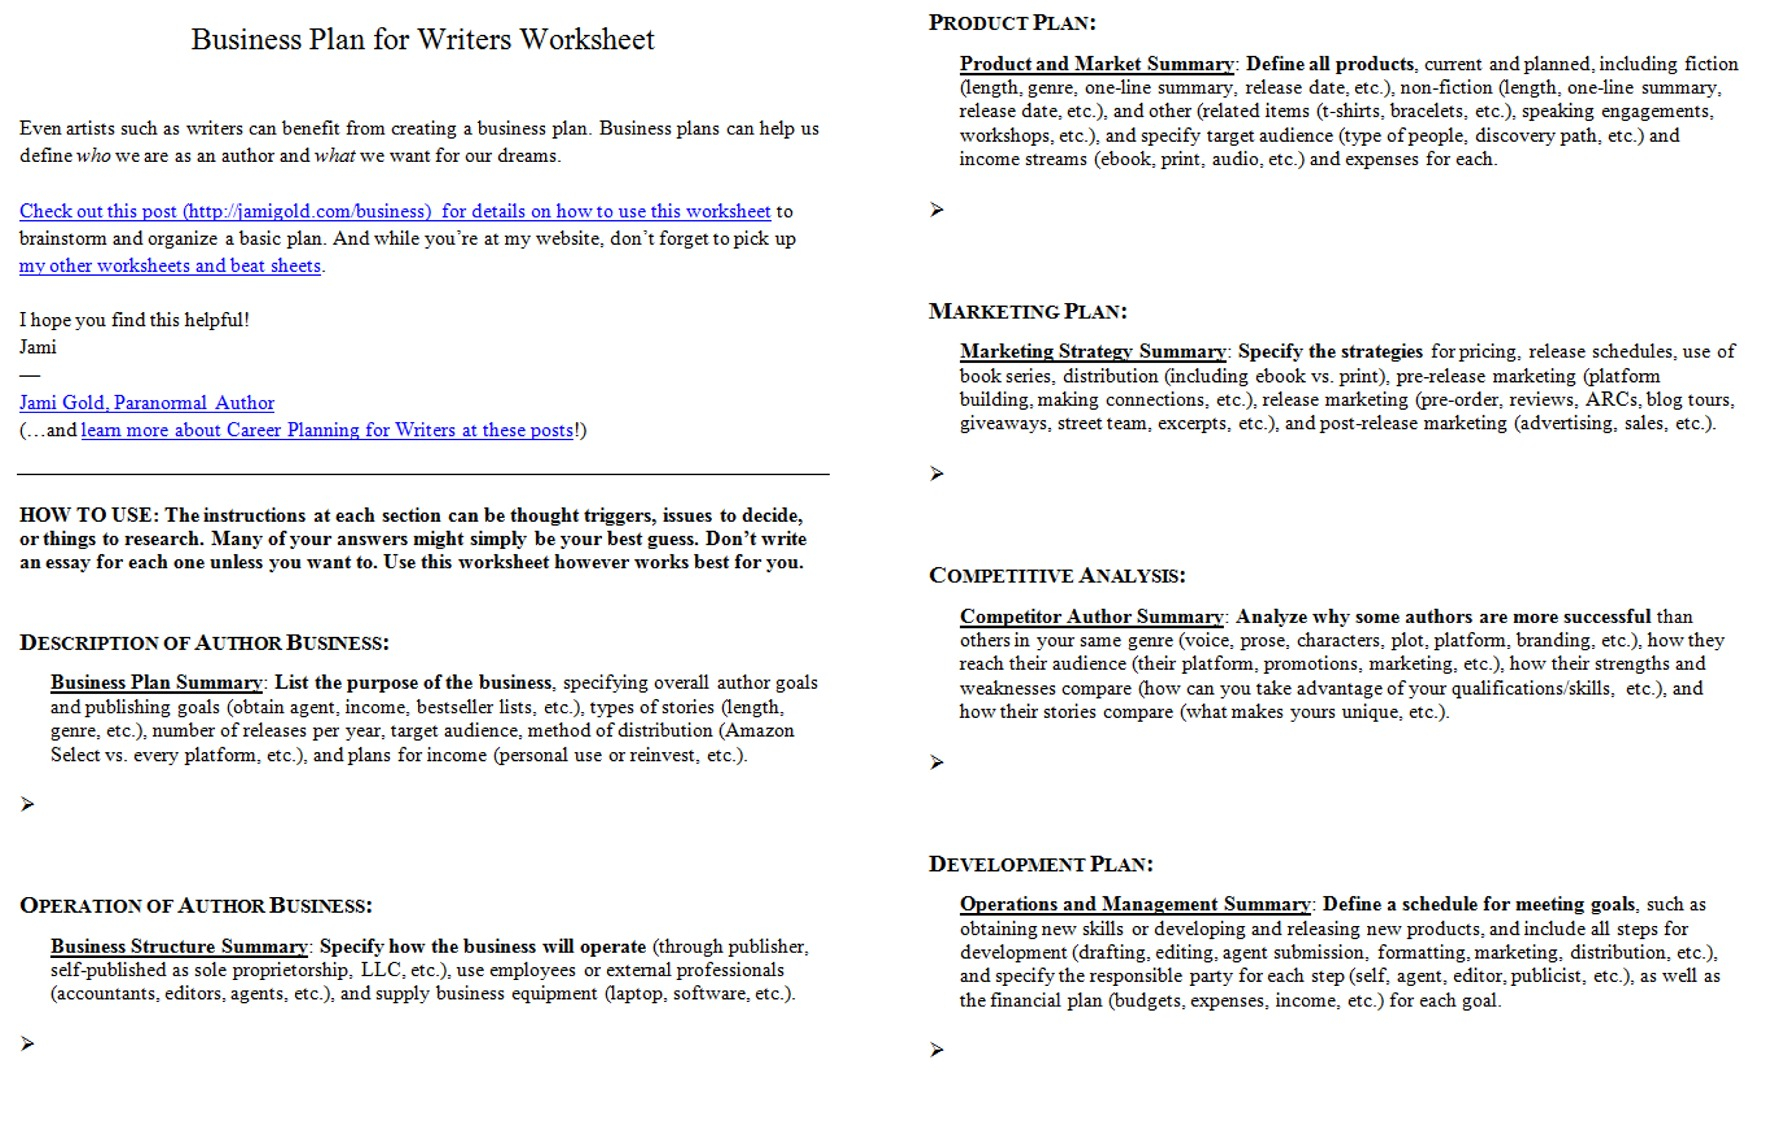 Aldiablosus  Inspiring Worksheets For Writers  Jami Gold Paranormal Author With Great Screen Shot Of Both Pages Of The Business Plan For Writers Worksheet With Beauteous St Grade Weather Worksheets Also Coordinates Worksheet In Addition Fill In The Blank World Map Worksheet And Writing Worksheets First Grade As Well As Grade  Division Worksheets Additionally Reading Worksheets For Kindergarten Free From Jamigoldcom With Aldiablosus  Great Worksheets For Writers  Jami Gold Paranormal Author With Beauteous Screen Shot Of Both Pages Of The Business Plan For Writers Worksheet And Inspiring St Grade Weather Worksheets Also Coordinates Worksheet In Addition Fill In The Blank World Map Worksheet From Jamigoldcom